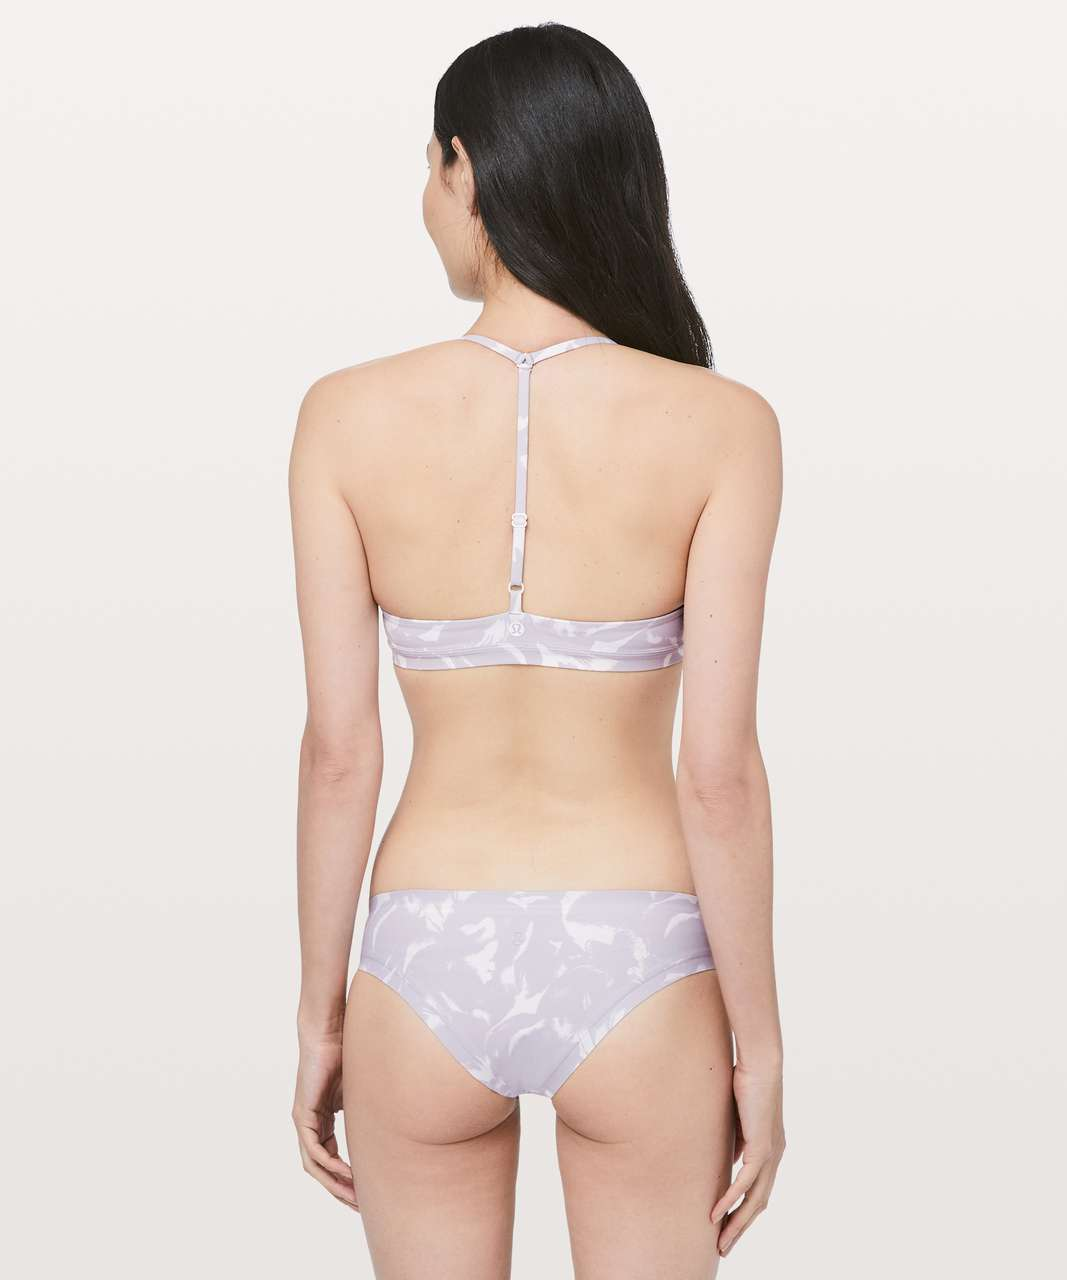 Lululemon Deep Sea Swim Top - Mini Flower Pop White Silver Lilac